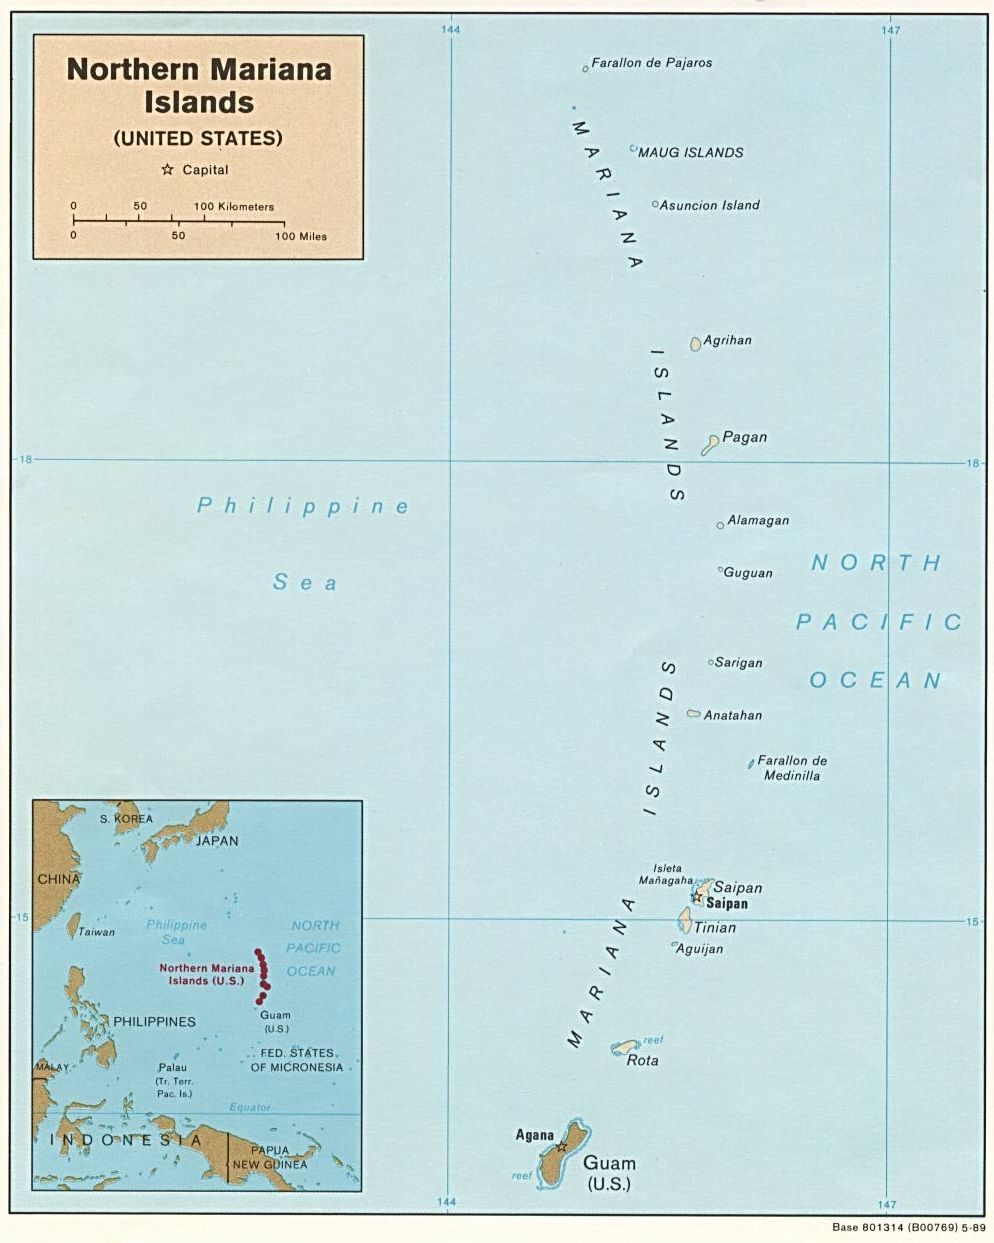 Map of the Commonwealth of the Northern Mariana Islands (Political), 1989. Courtesy of, The World Factbook (http://cia.gov/cia/publications/factbook) or CIA Maps and Publications Released to the Public (http://www.cia.gov/cia/publications/mapspub), Central Intelligence Agency (CIA), Government of the United States of America (USA); and the Perry-Casta�eda Map Collection (http://www.lib.utexas.edu/maps), Perry-Casta�eda Library, The General Libraries, University of Texas at Austin, Austin, Texas, USA.